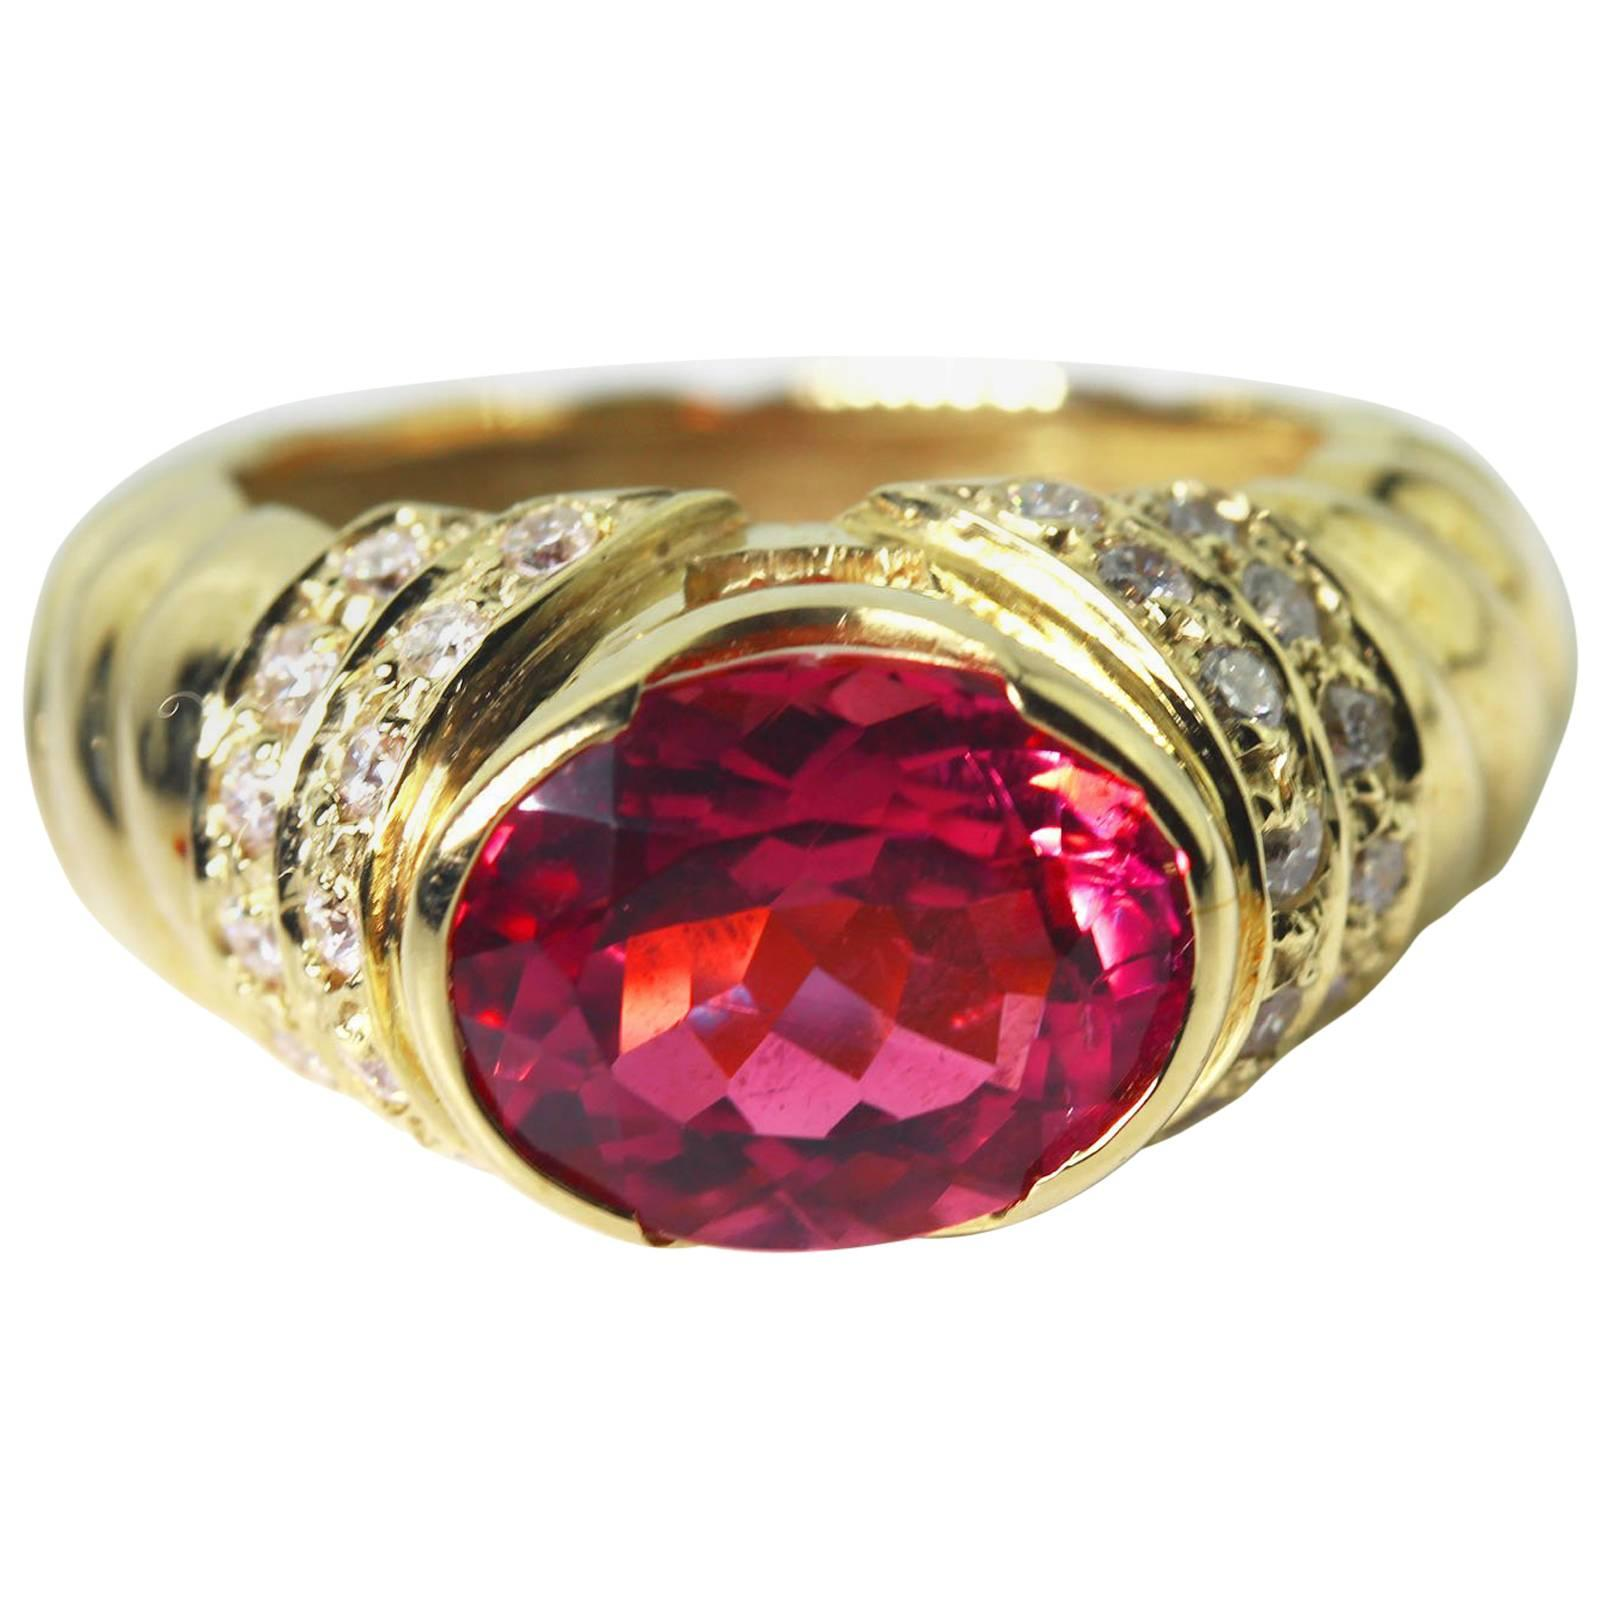 Gemjunky 4 Carat Pinky Red Tourmaline Diamond 18kt Gold Cocktail/Dinner Ring